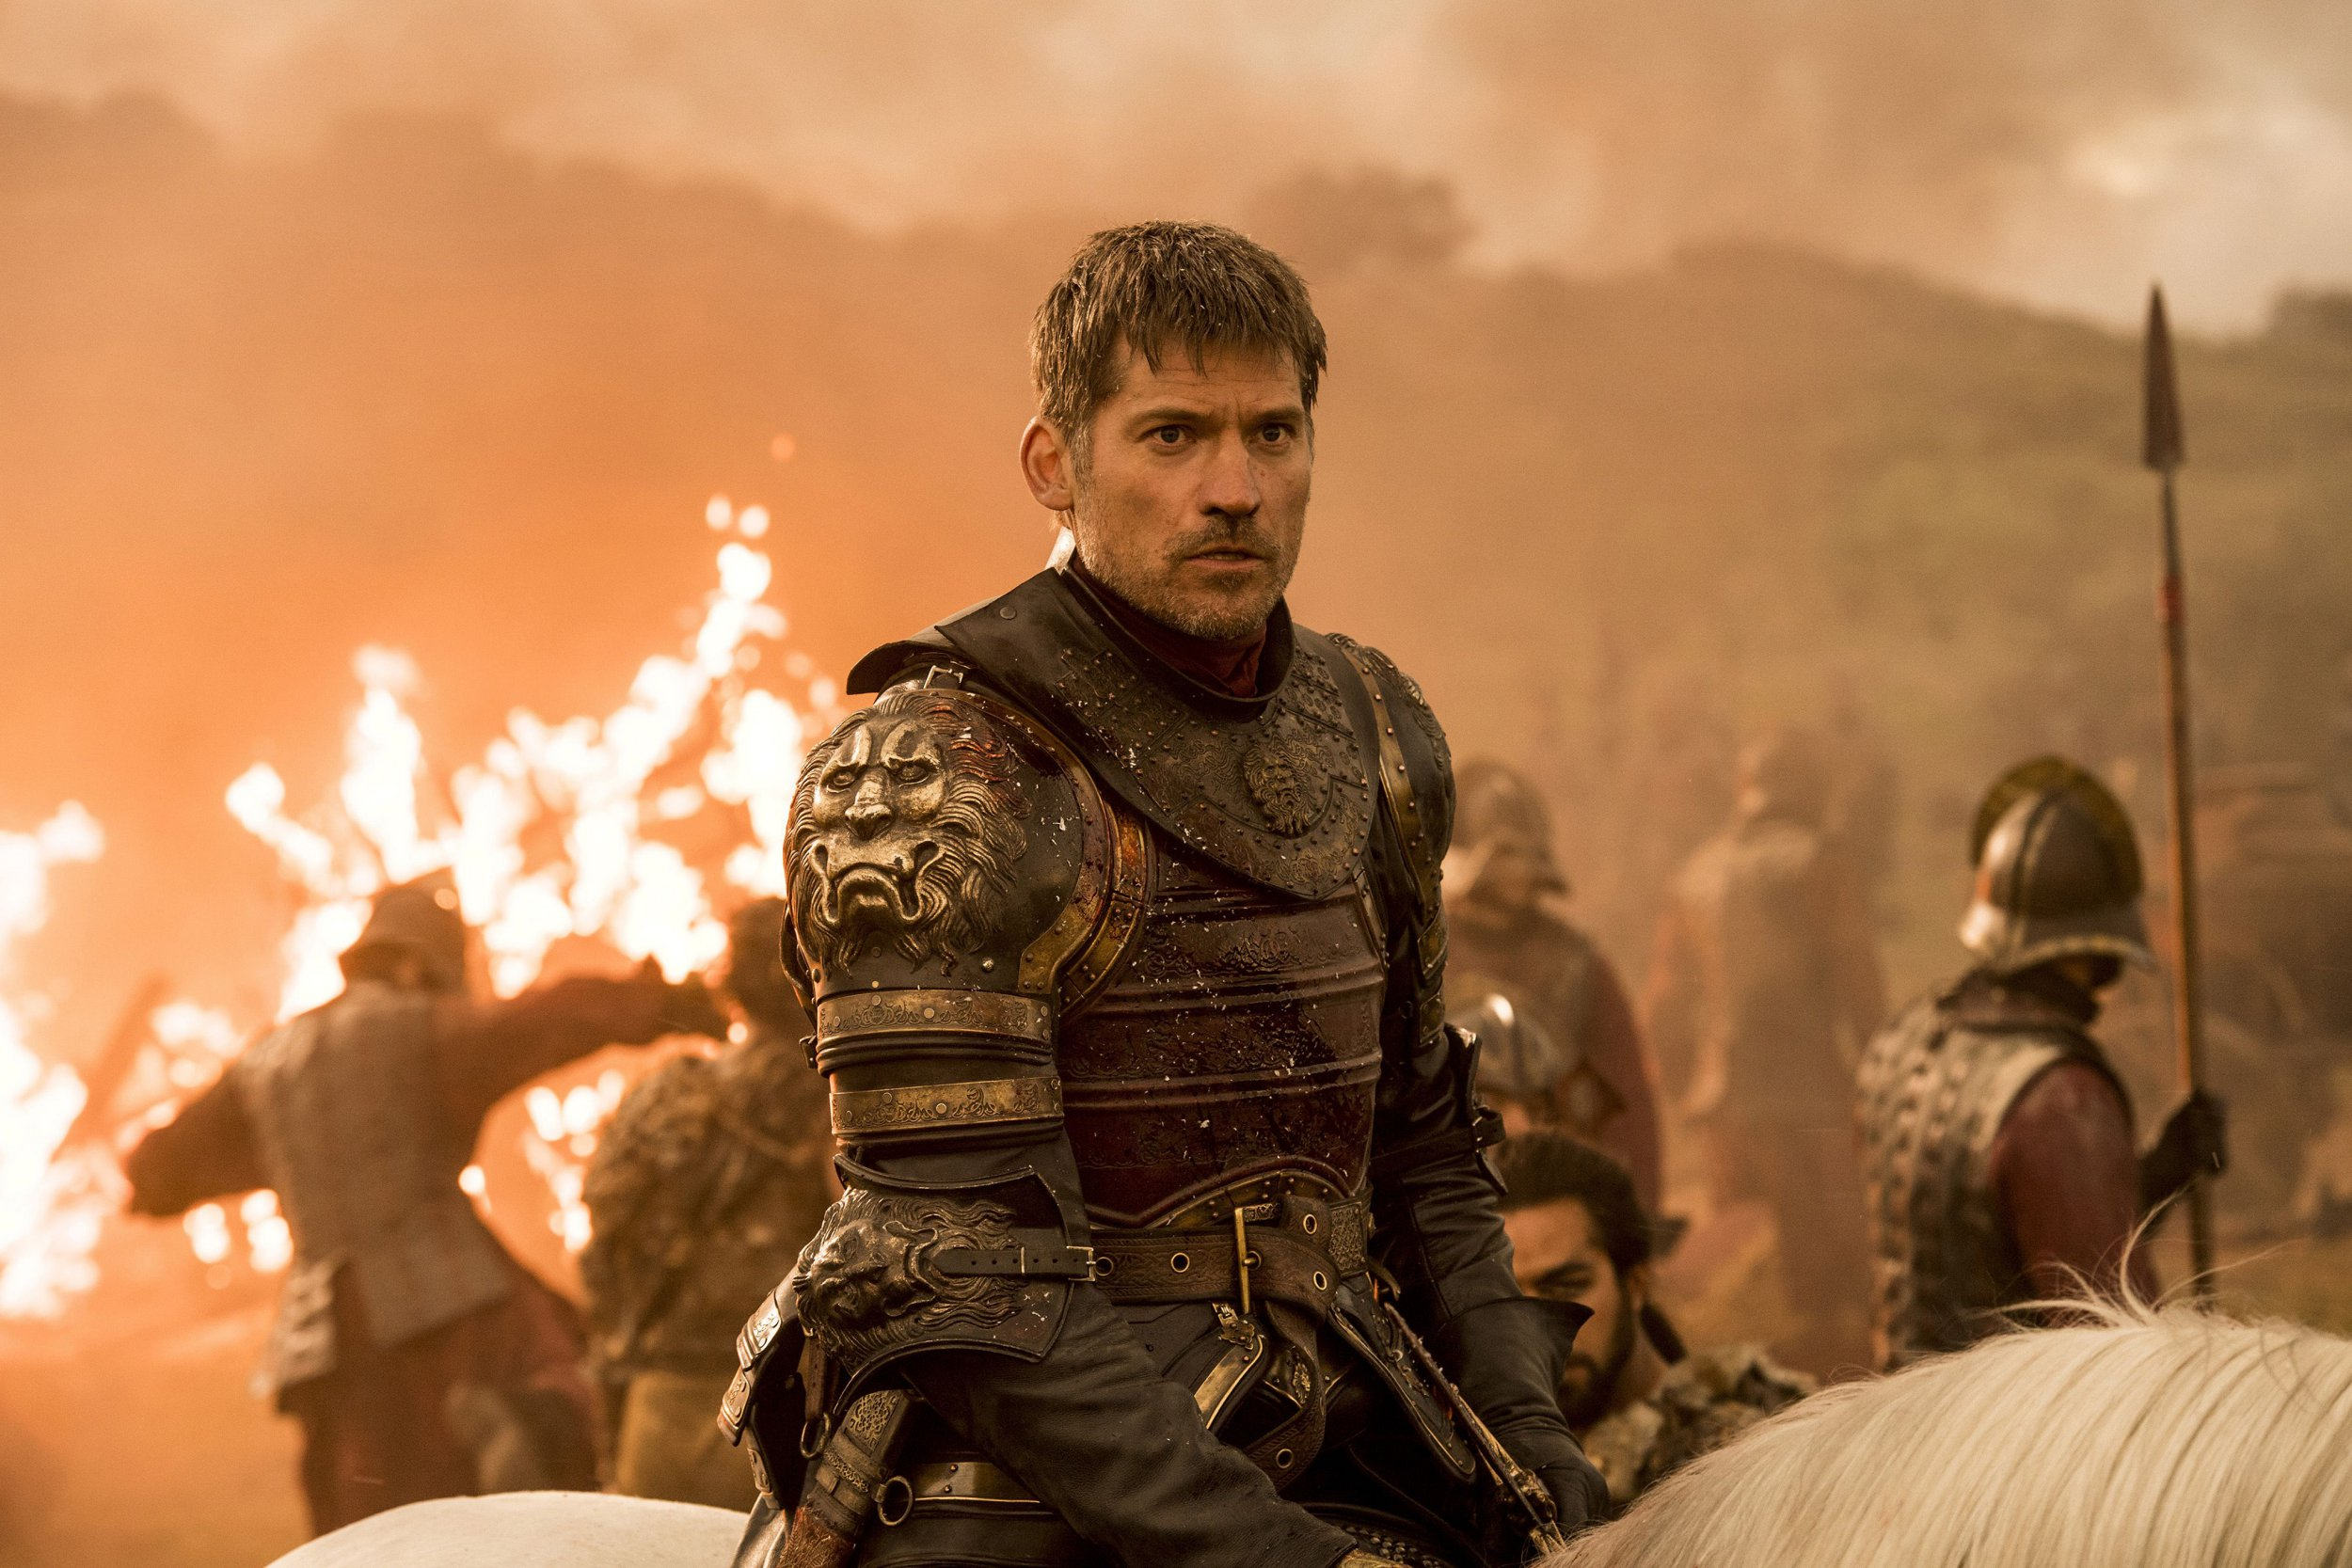 What did Jaime Lannister do to Daenerys Targaryen's family?